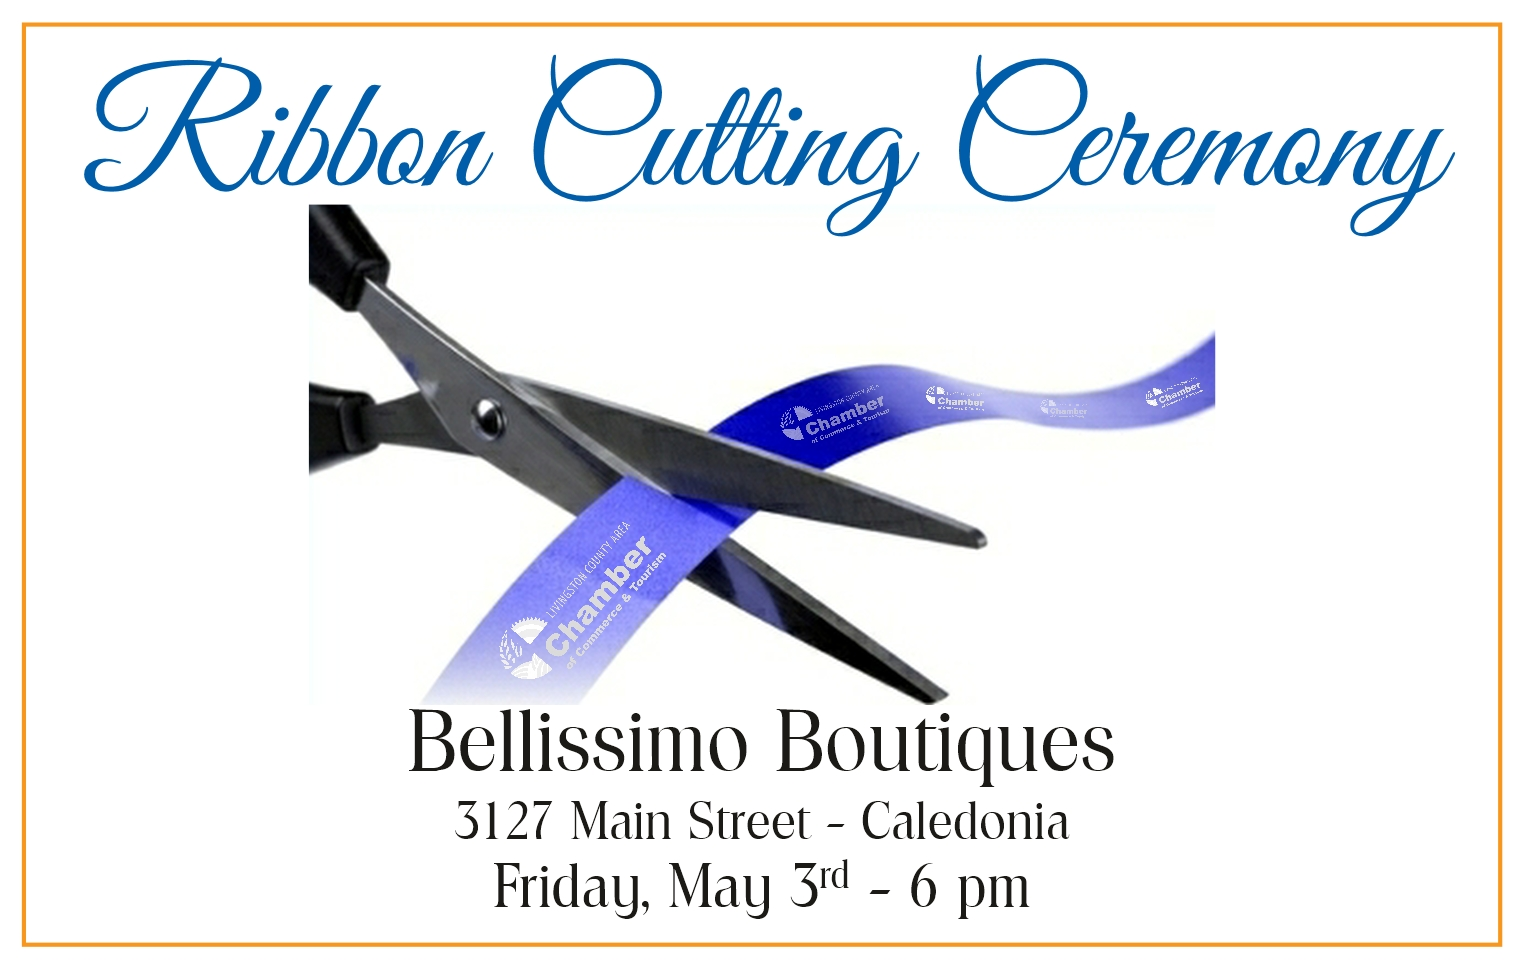 Ribbon-Cutting.-Chamber-Website-Header---Bellissimo-Boutiques.jpg